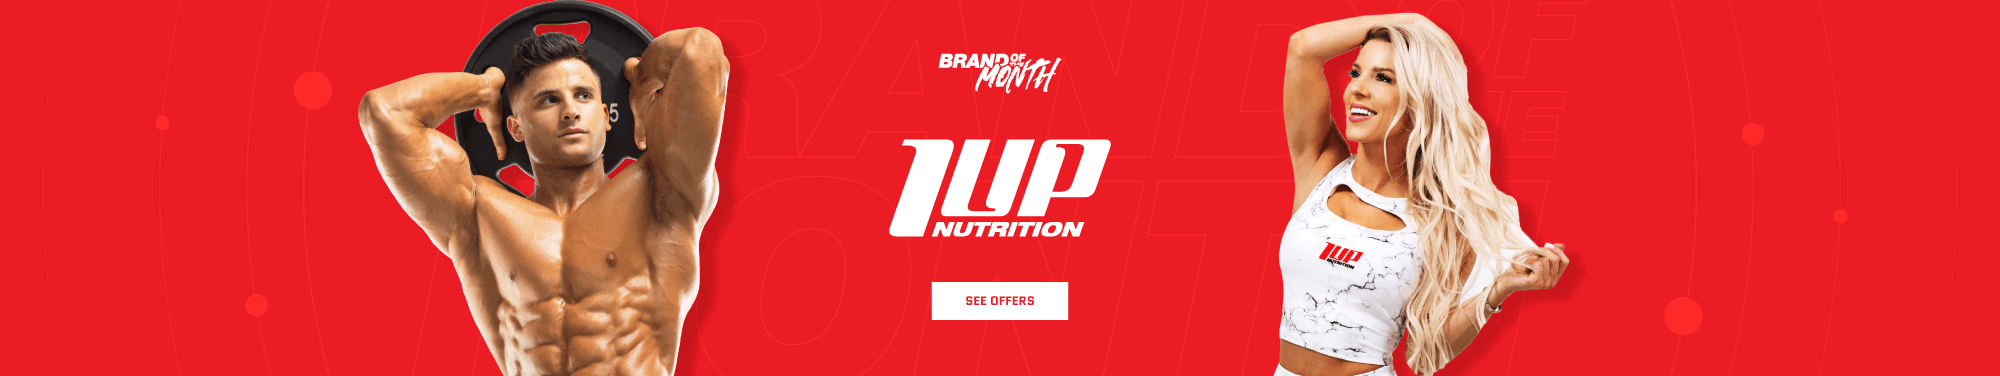 1UP Brand of the Month